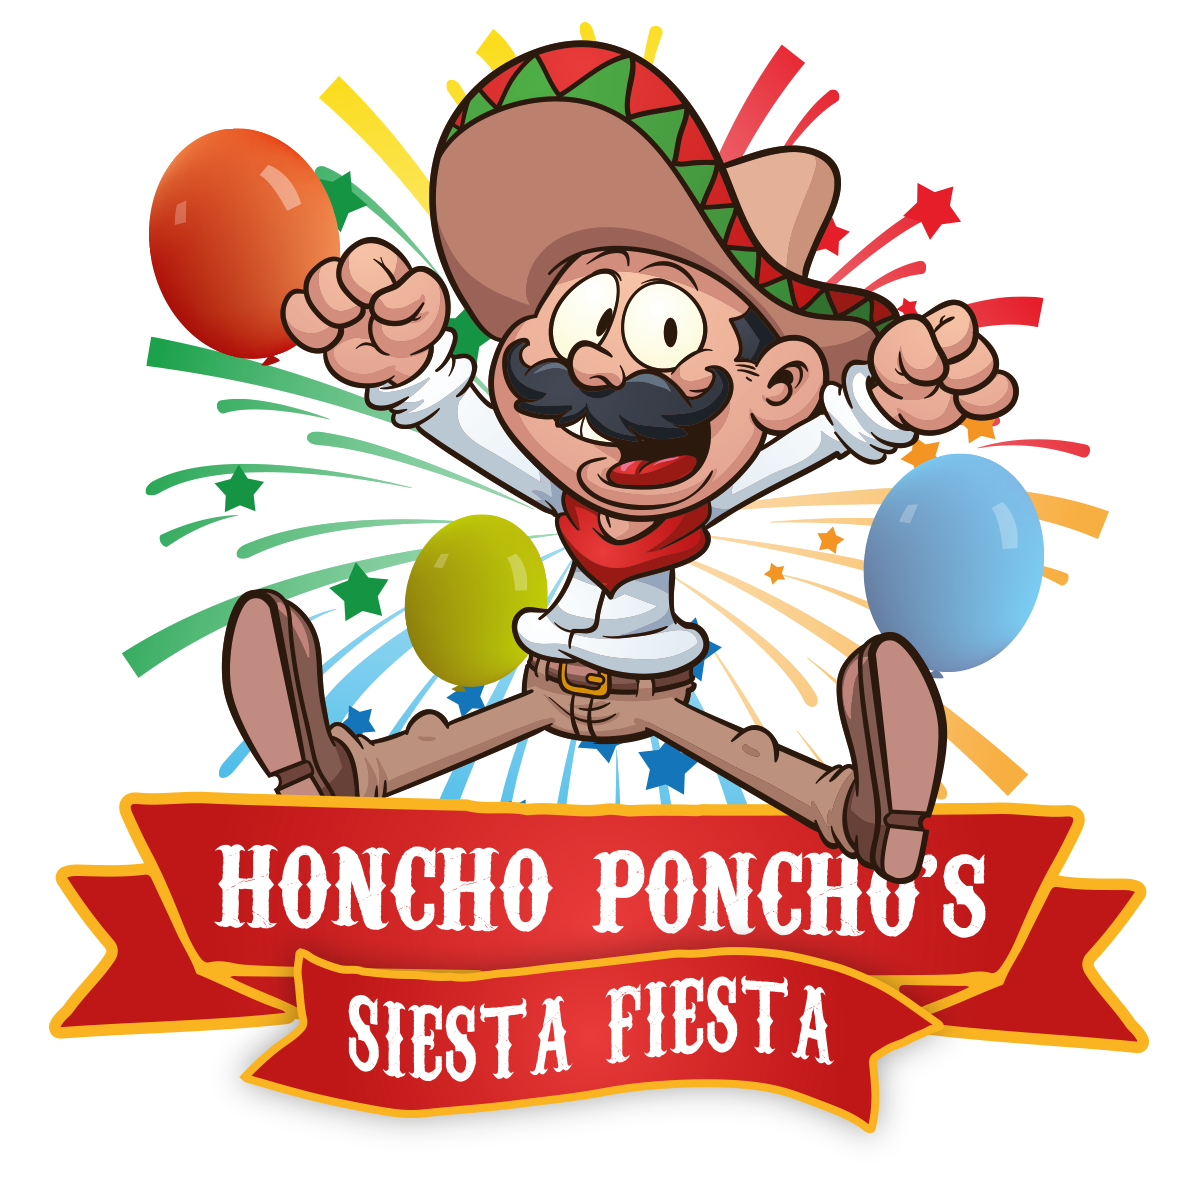 Honcho Poncho's Siesta Fiesta Holiday Club